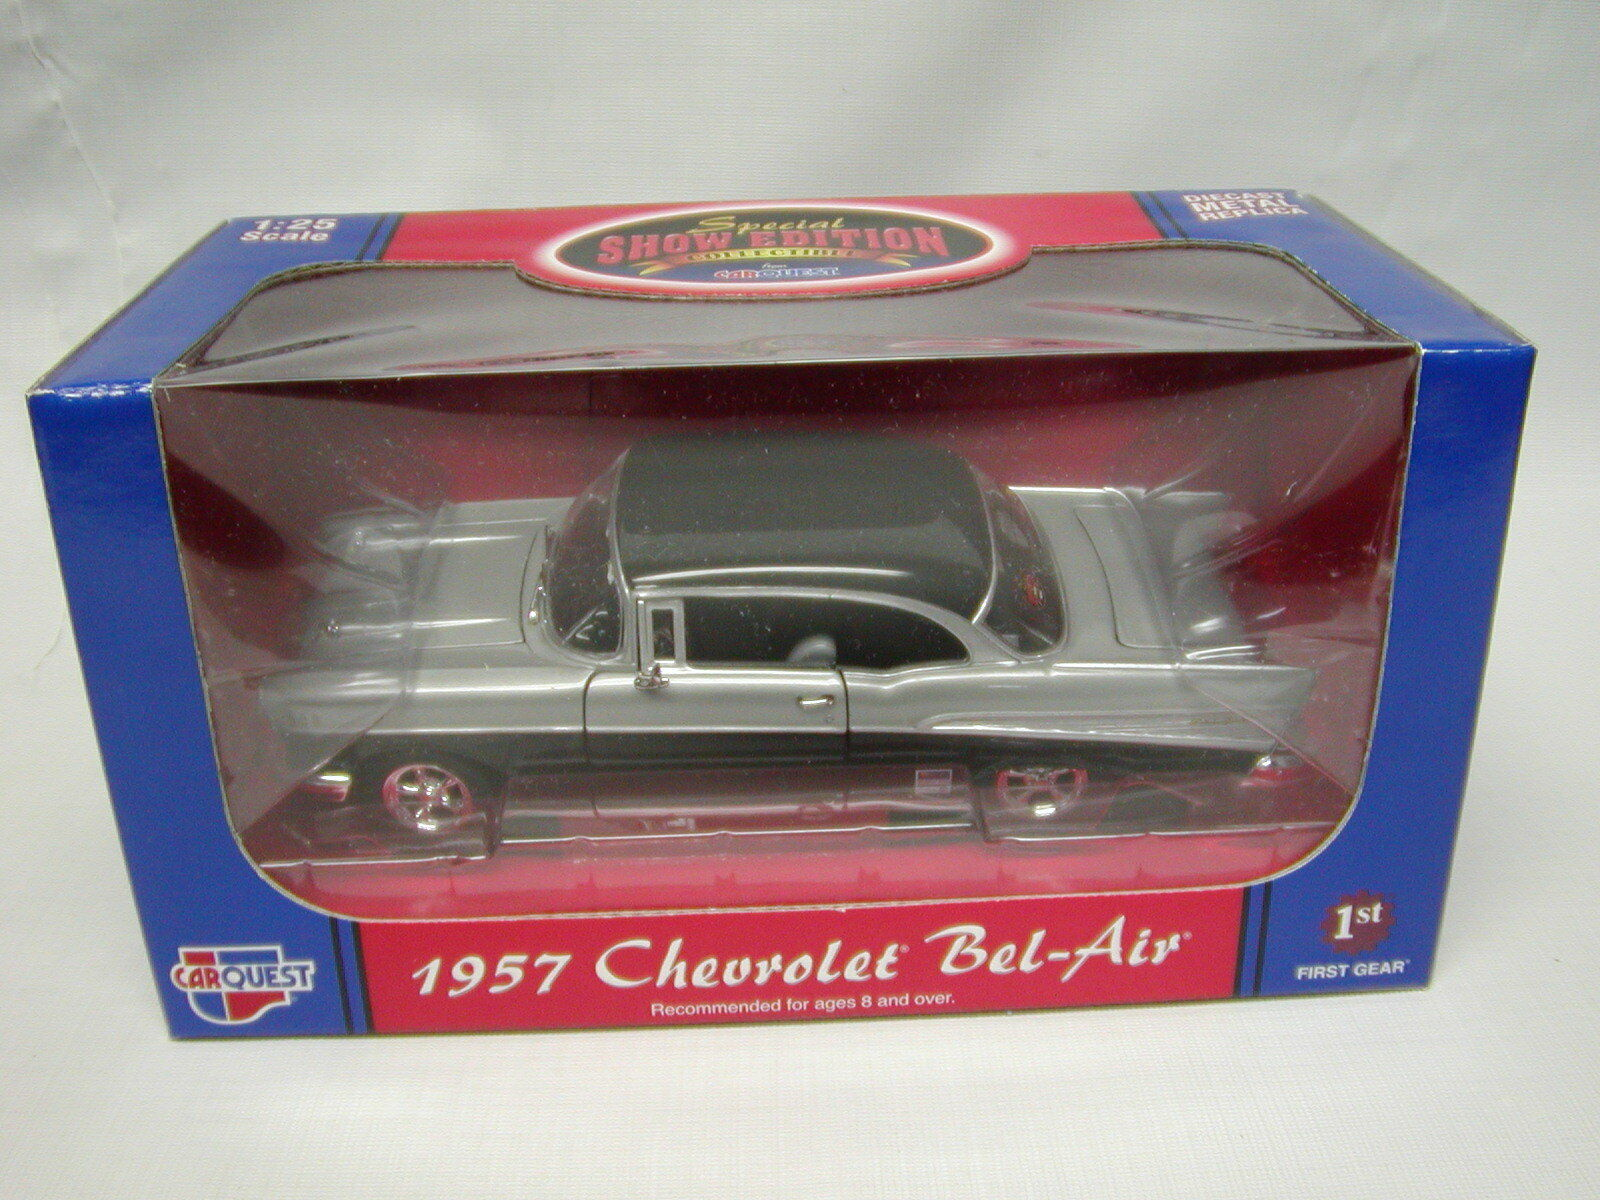 NEW 125 Carquest 1957 Chevrolet Bel Air by 1st First Gear 1600x1200